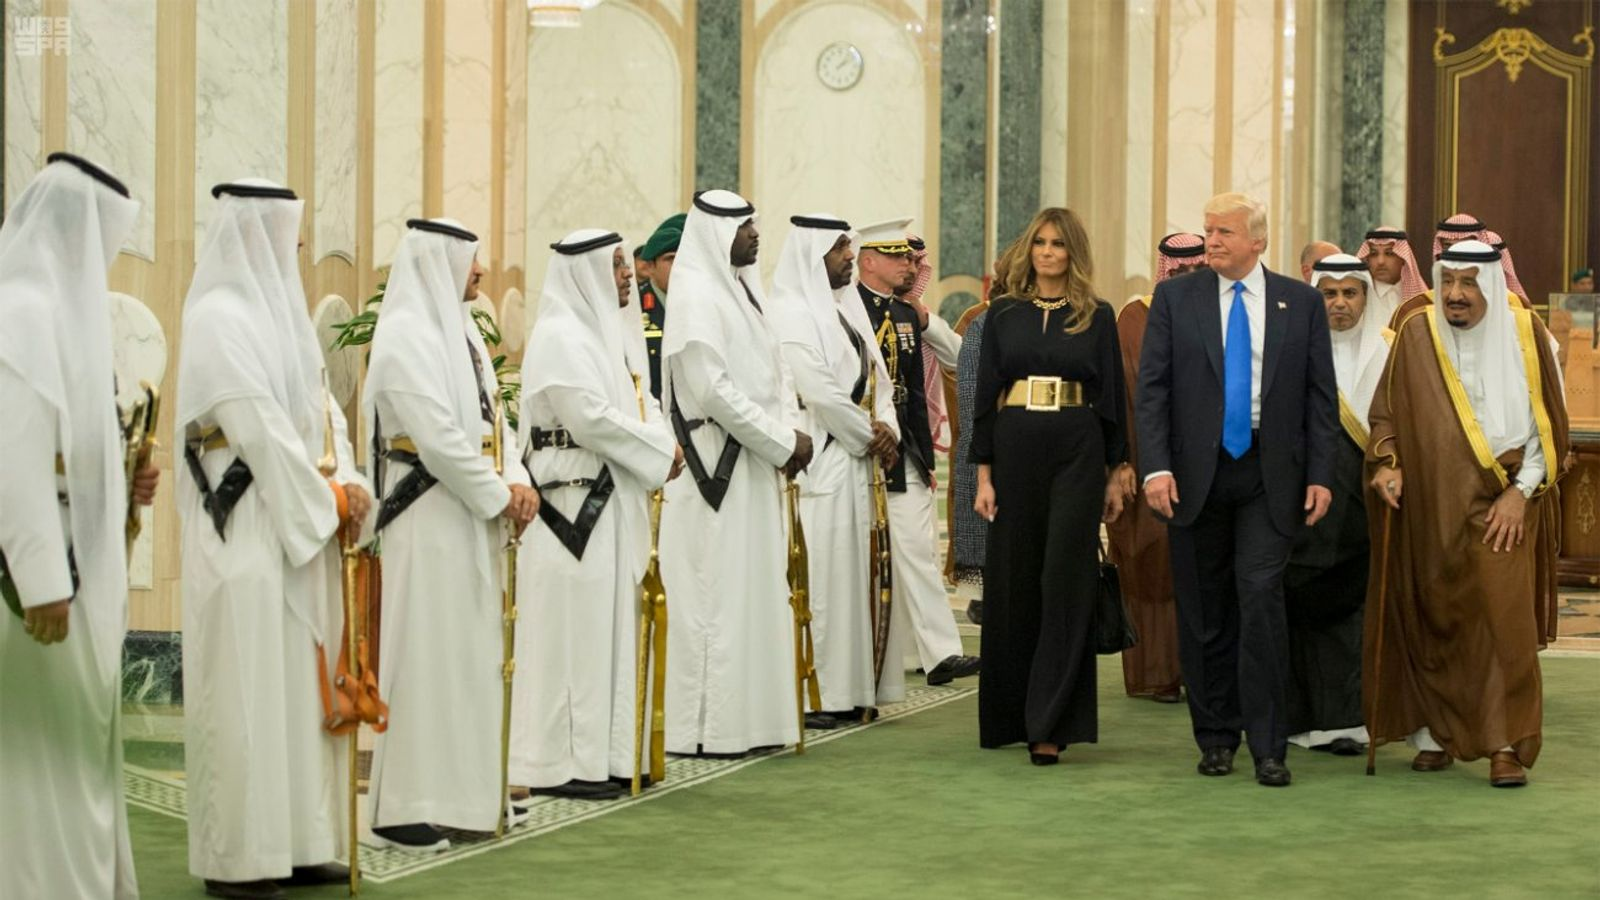 Is Trump's flight from Saudi Arabia to Israel a first?